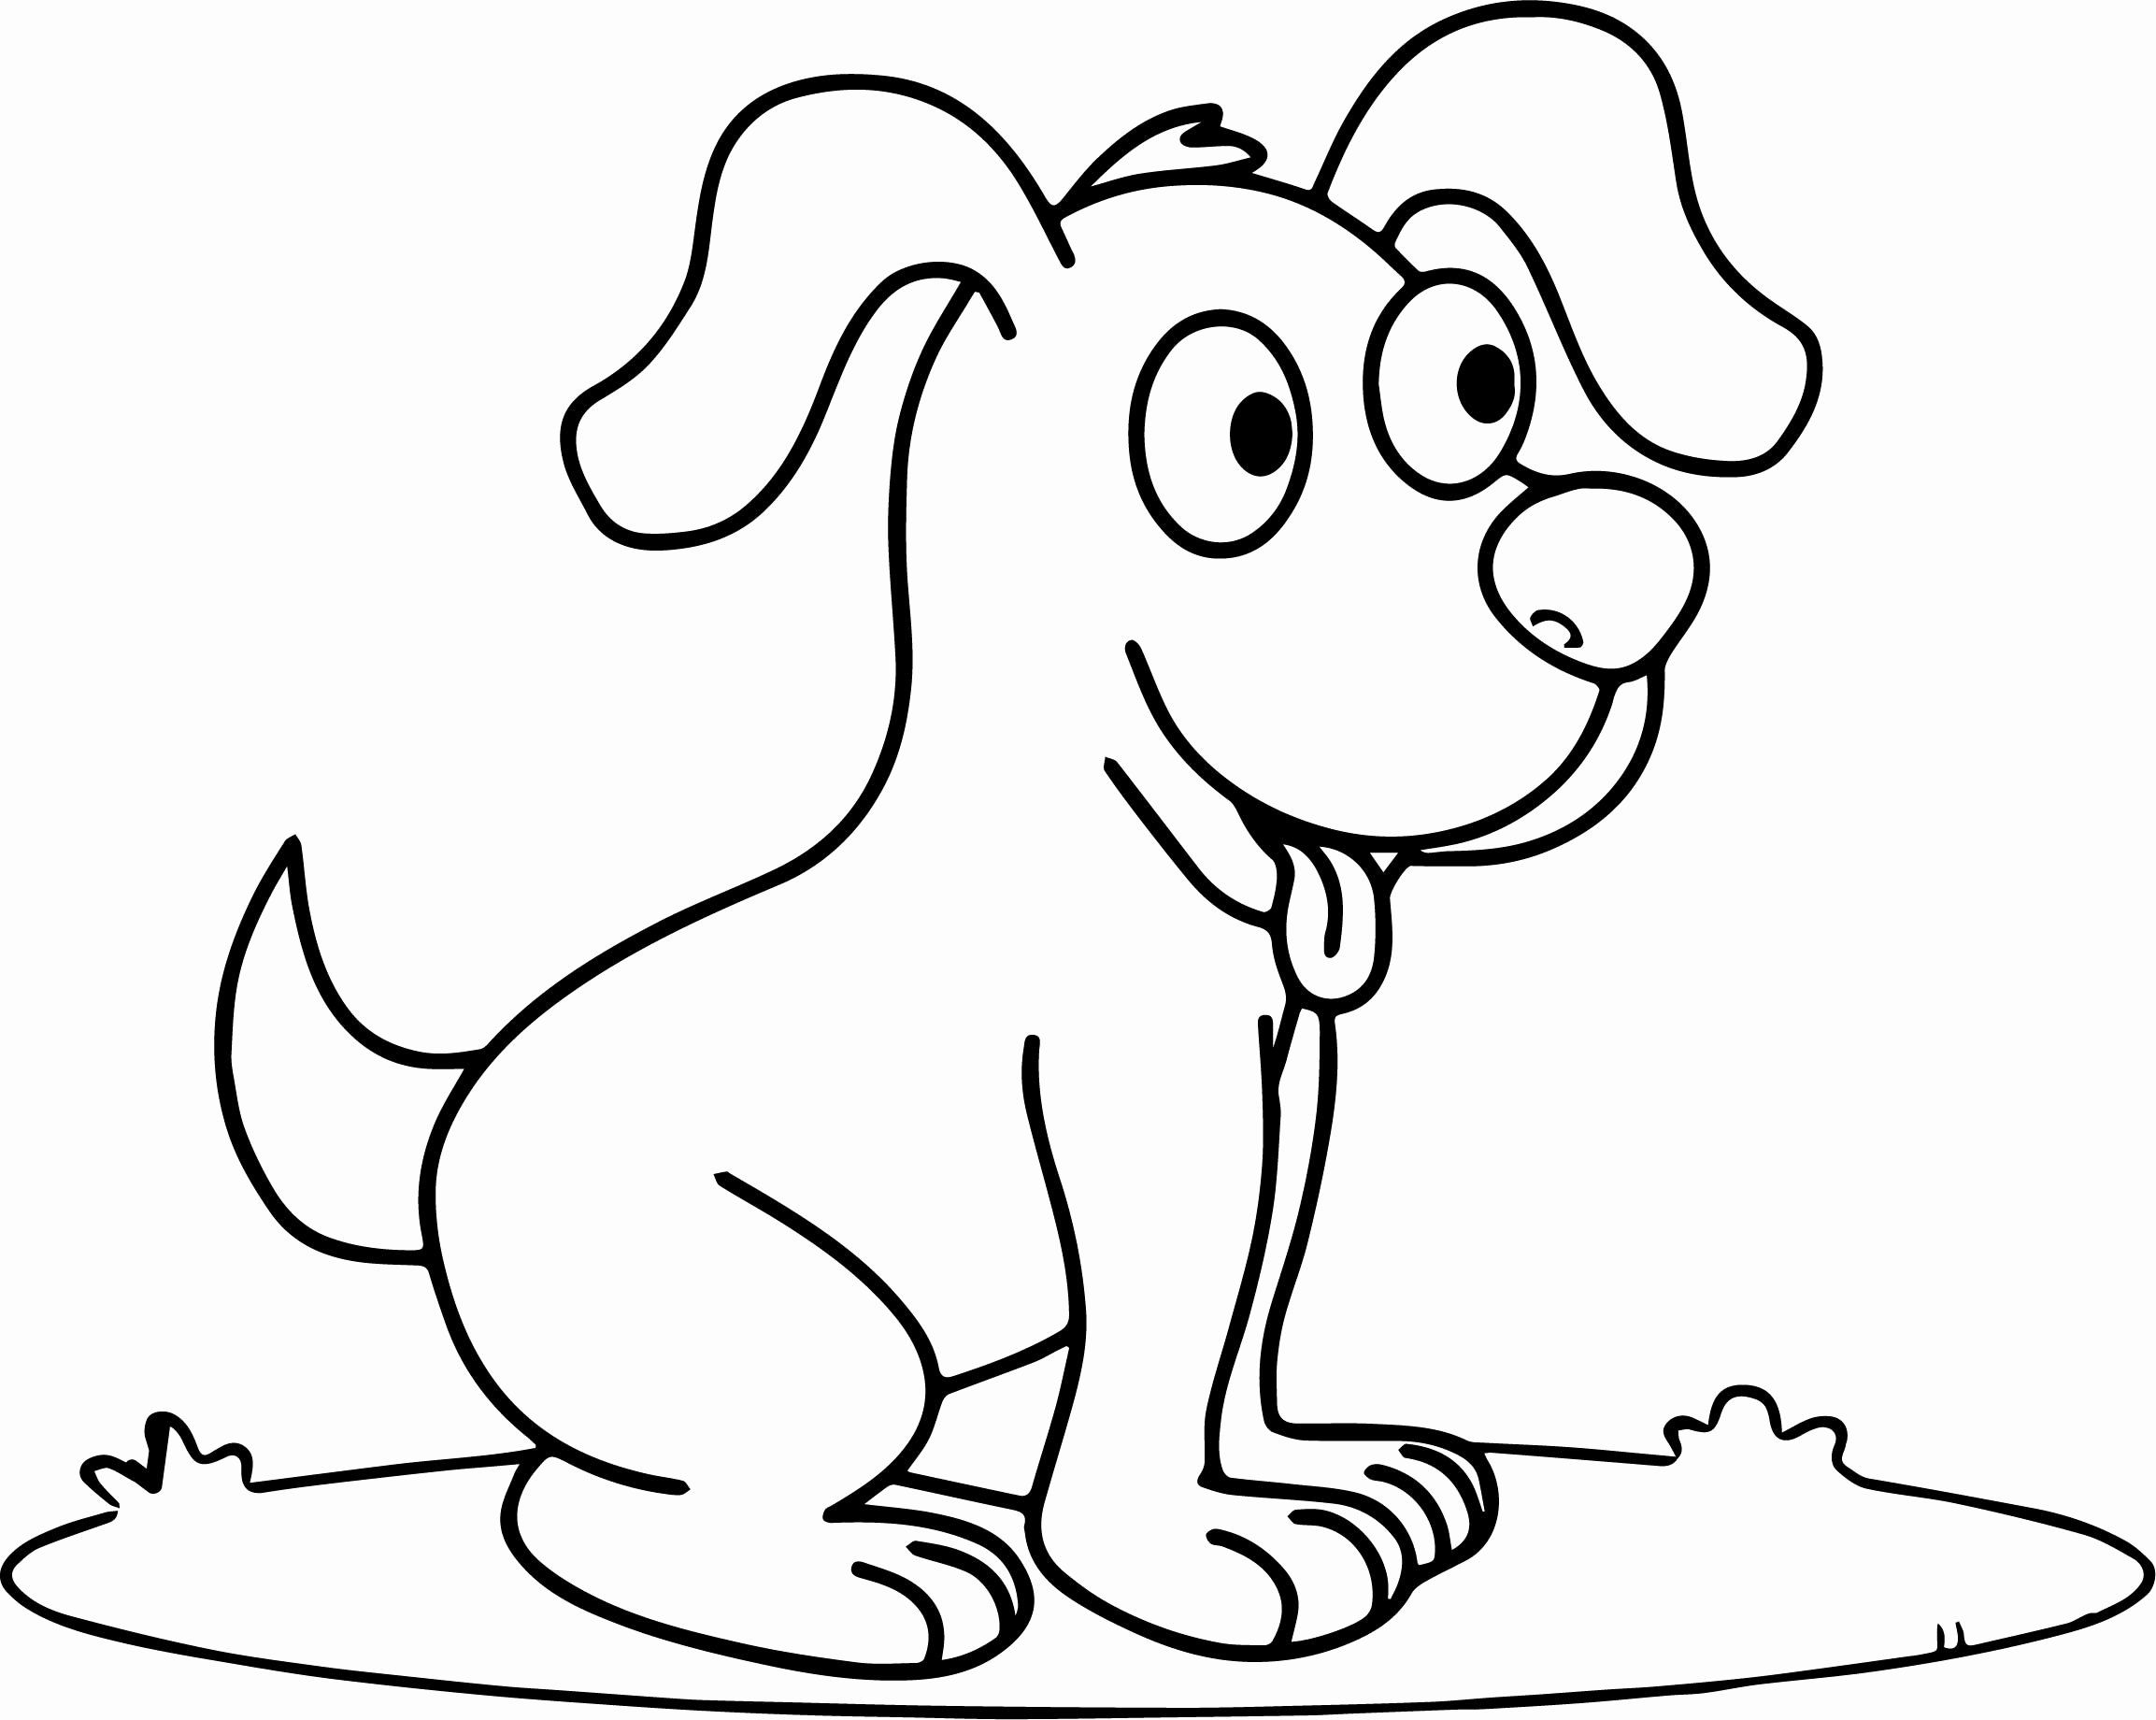 Cartoon Dog Coloring Pages Inspirational Cute Happy